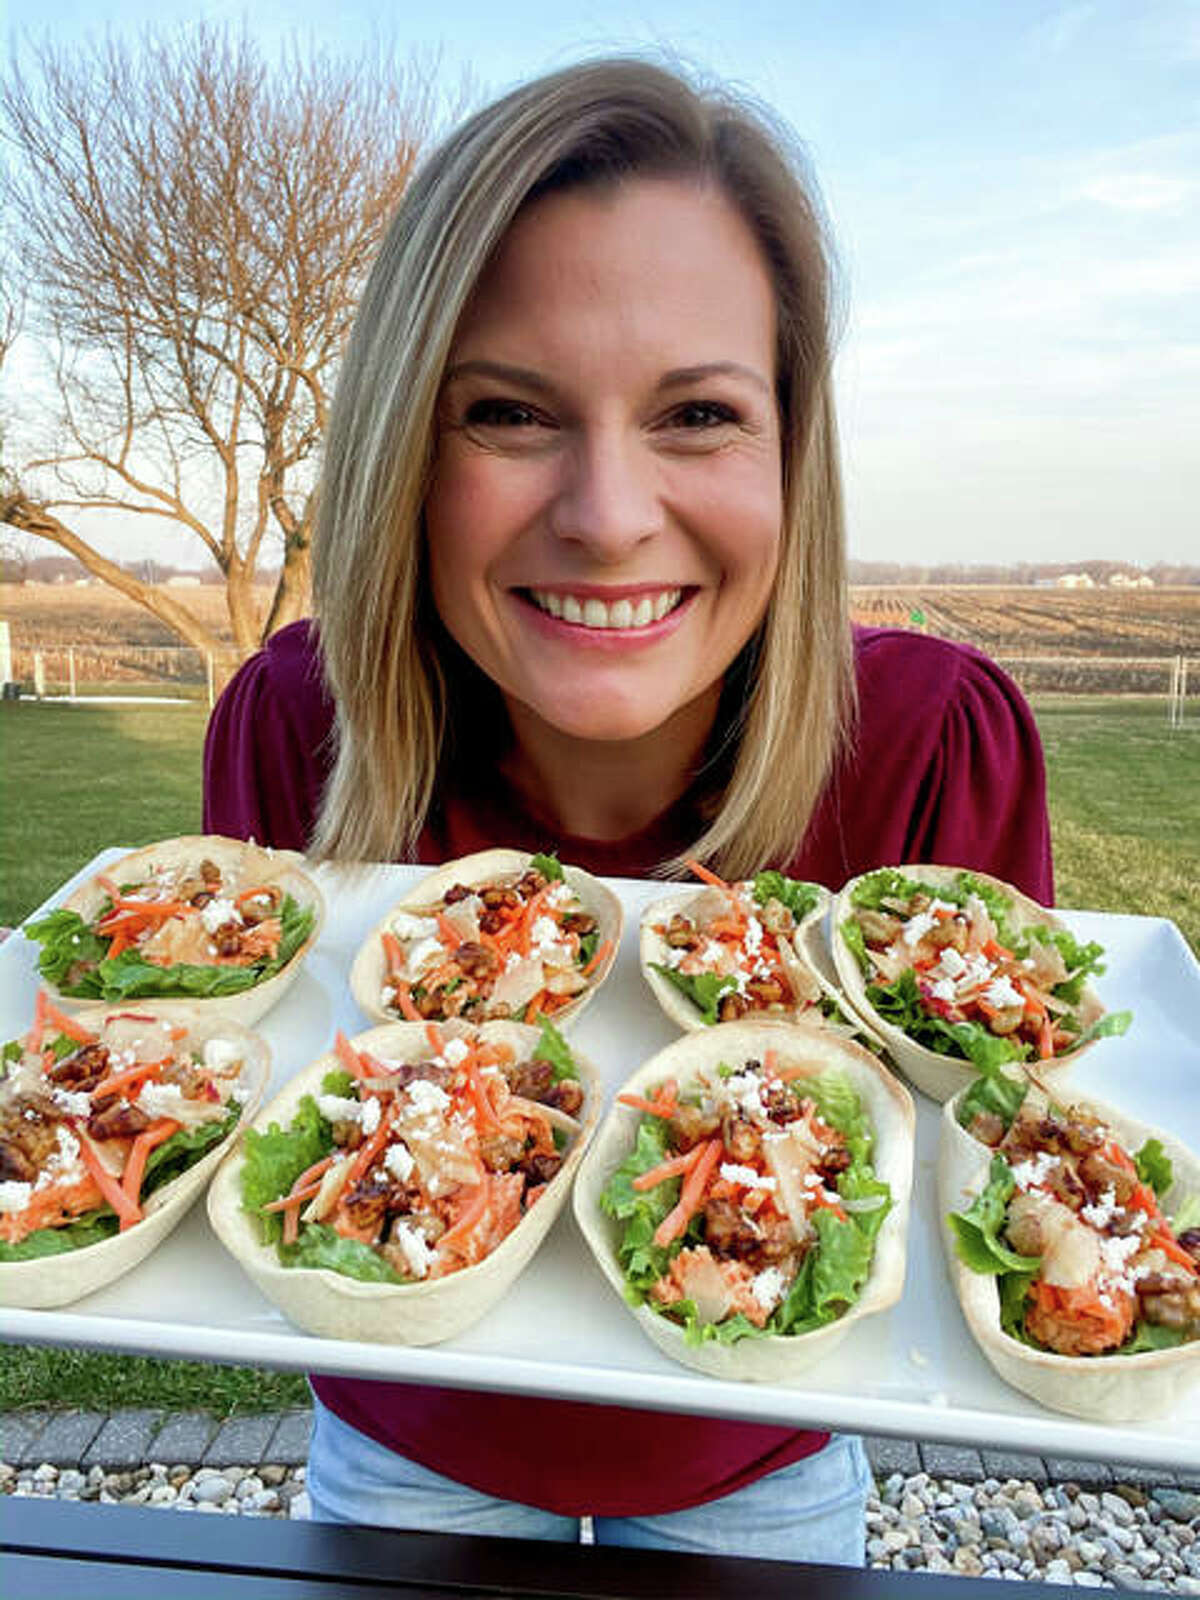 Rachel serving her Buffalo Chicken Tacos, adopted after a Buffalo Chicken Salad dish at Jack's Urban Eats based in California. The dish features a mixture of walnuts and apples with a kick of buffalo sauce.